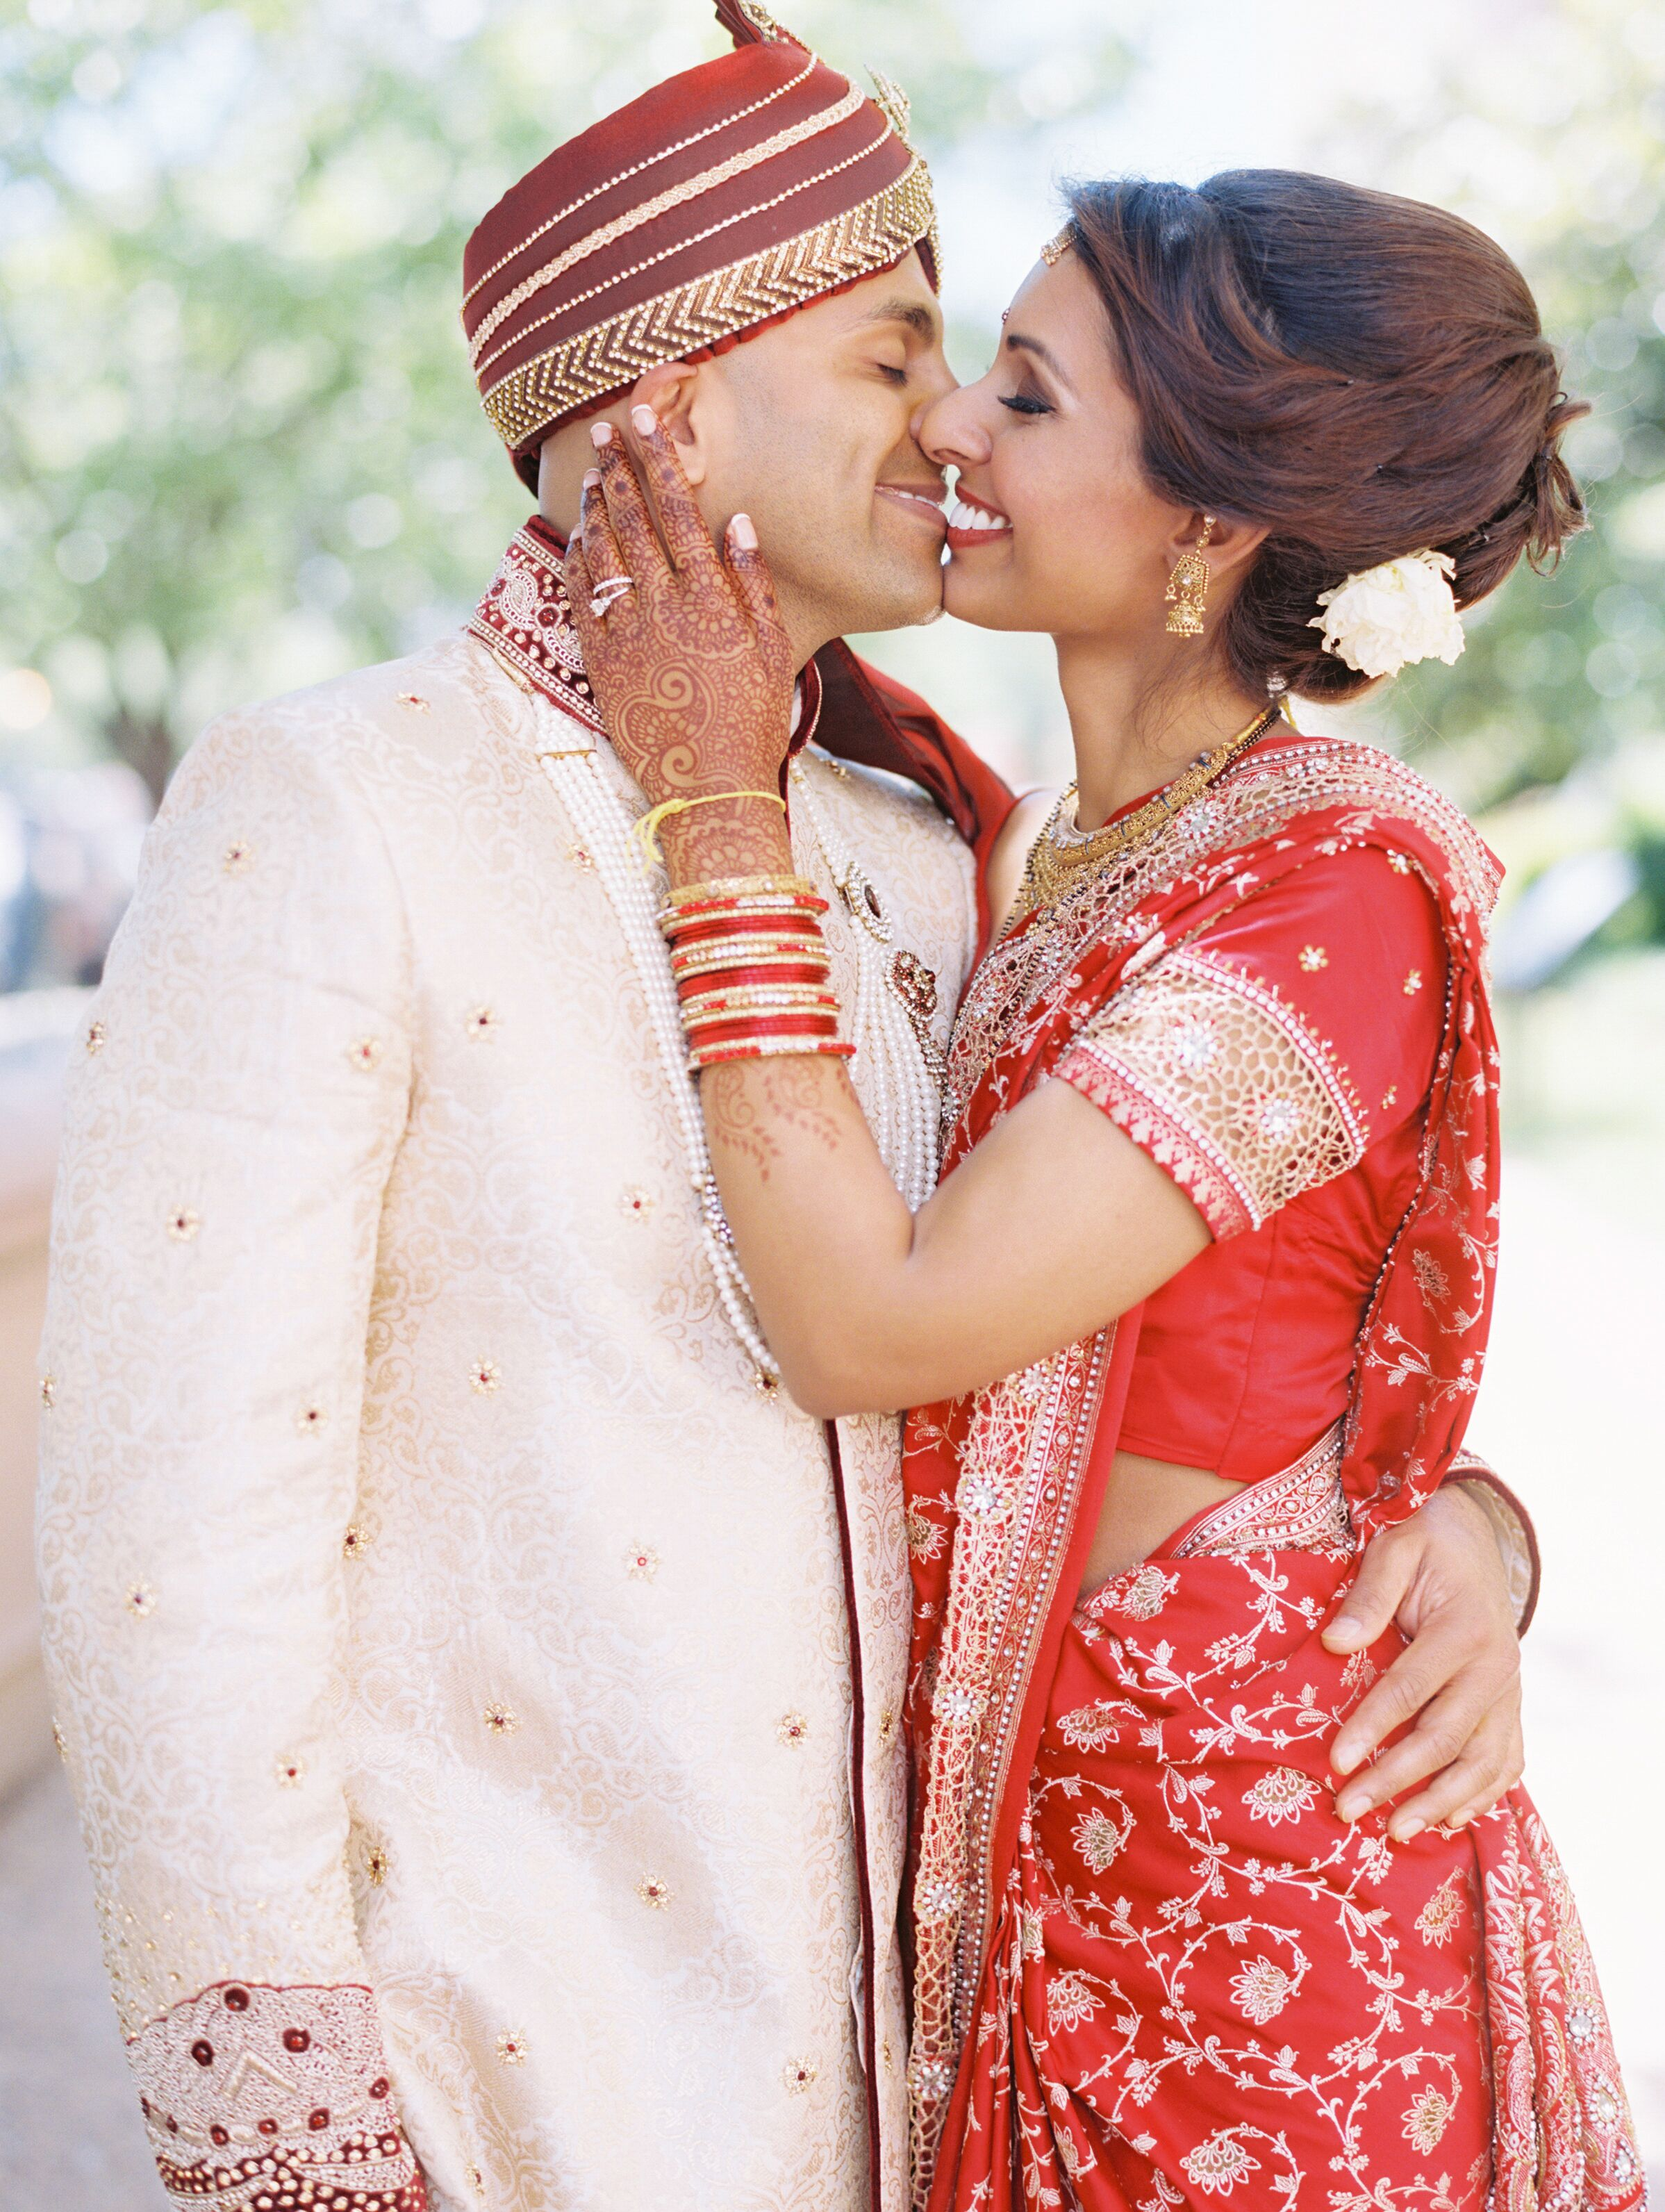 Bride and Groom in Traditional Indian Outfits for Ceremony